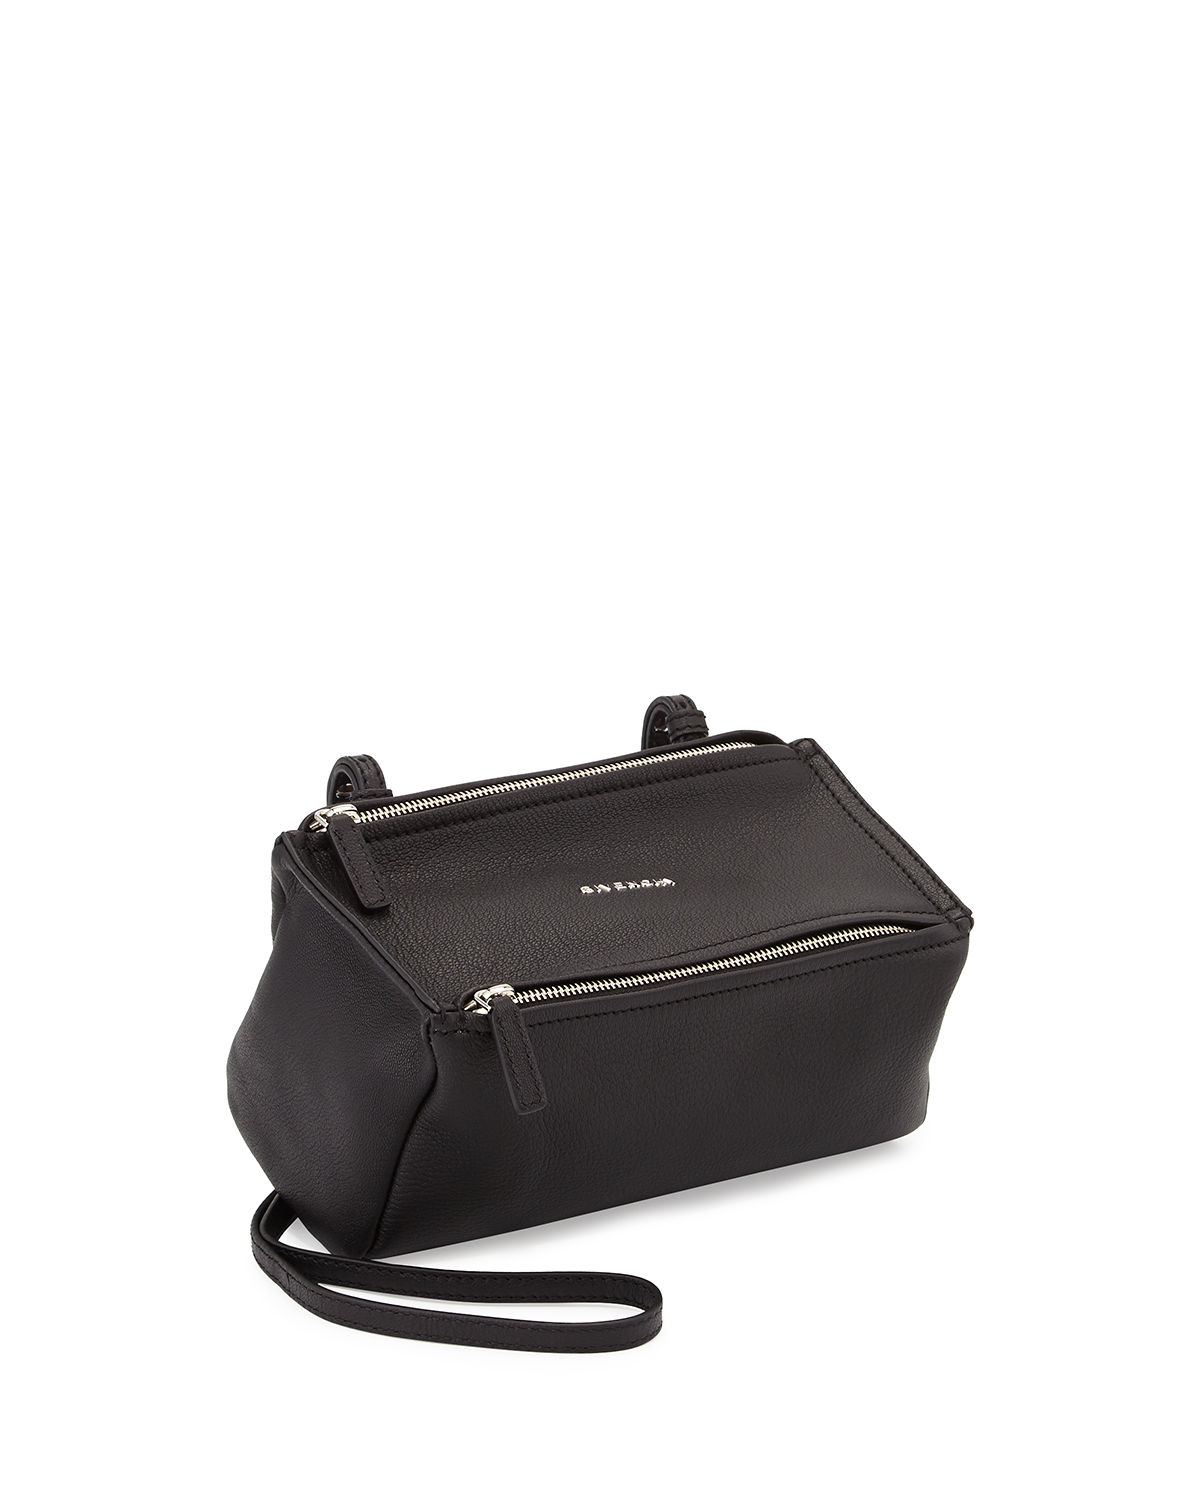 93fbcba7d19 Givenchy Pandora Mini Sugar Crossbody Bag | Neiman Marcus